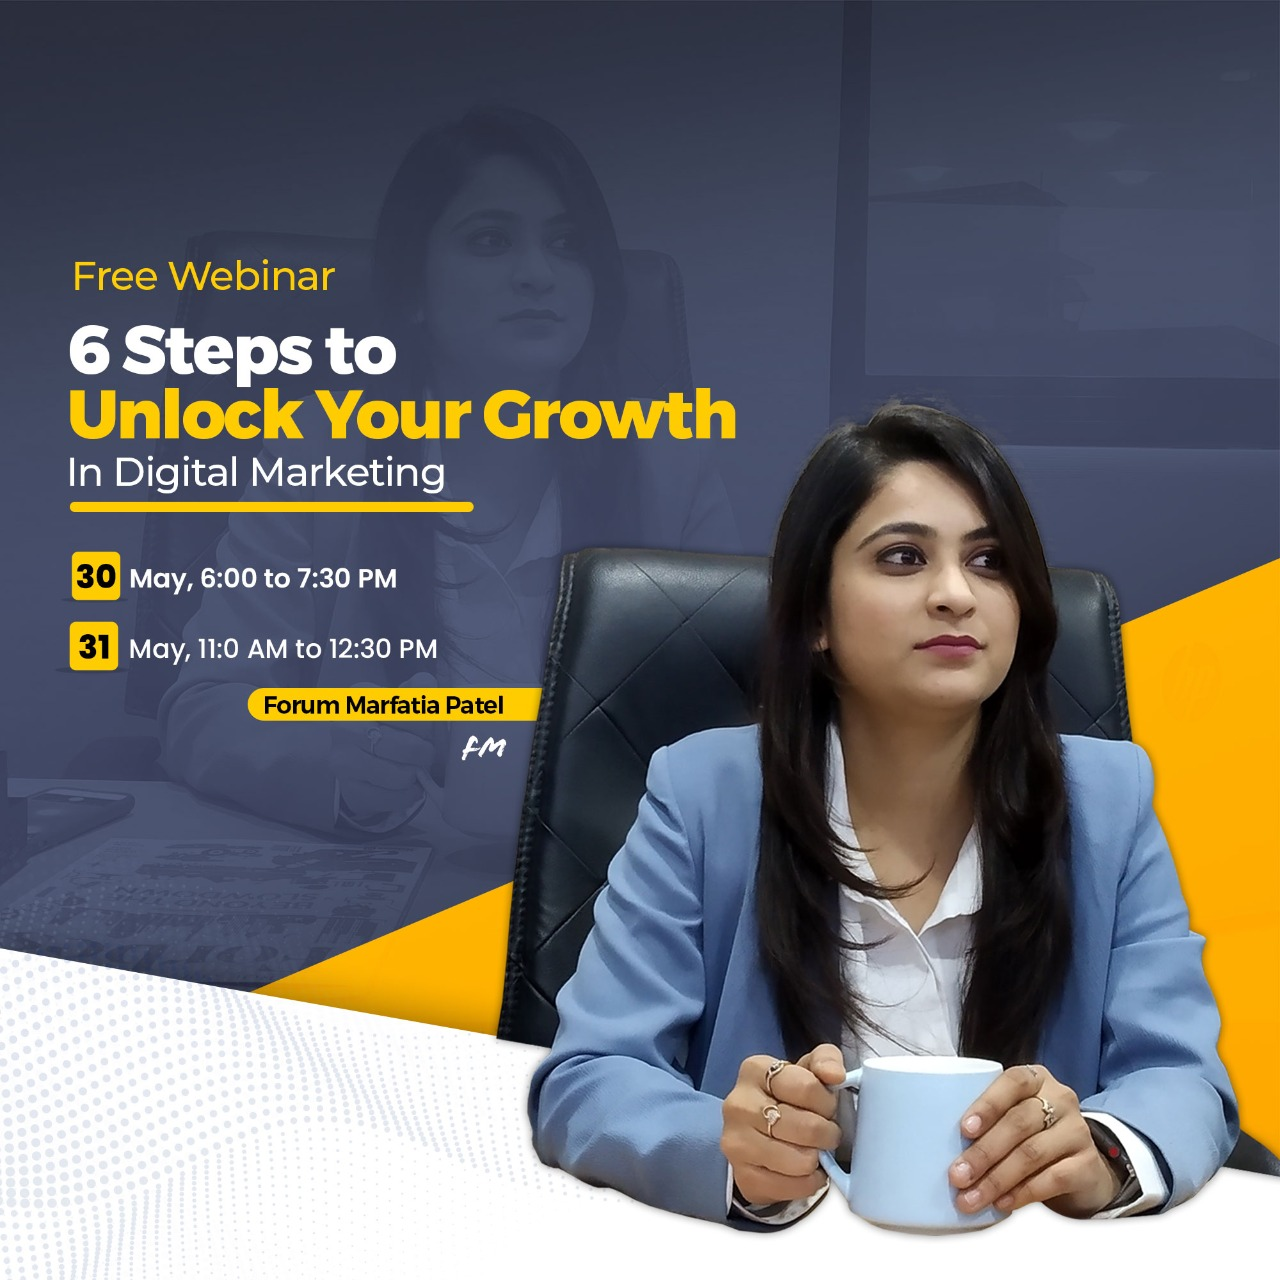 Free webinar on 6 steps to Unlock your Growth In Digital marketing.